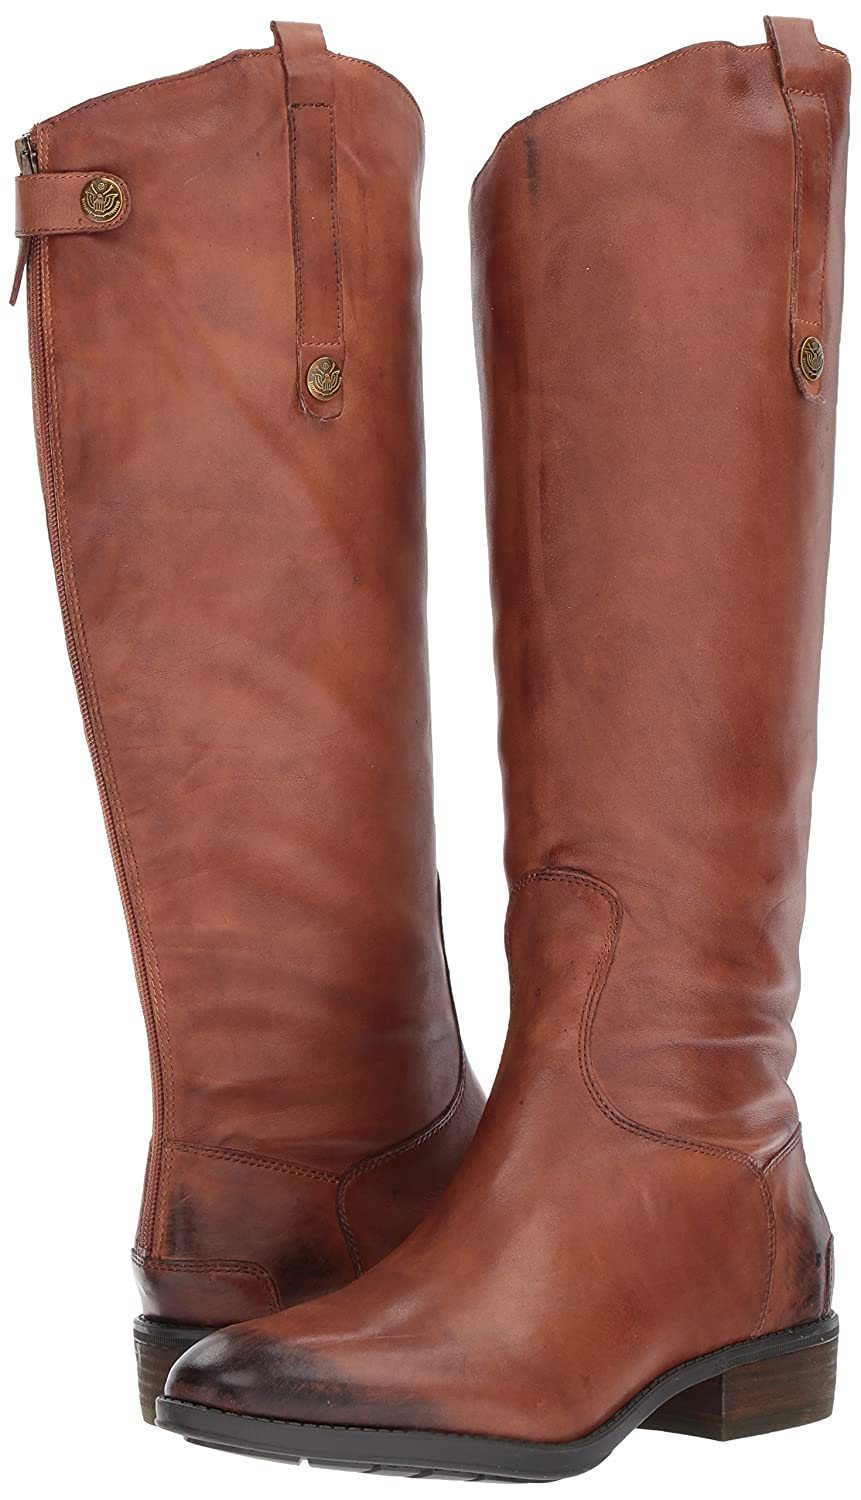 Sam Edelman Women's Penny Riding Boot B007FNCPPS 9.5 B(M) US|Whiskey Leather